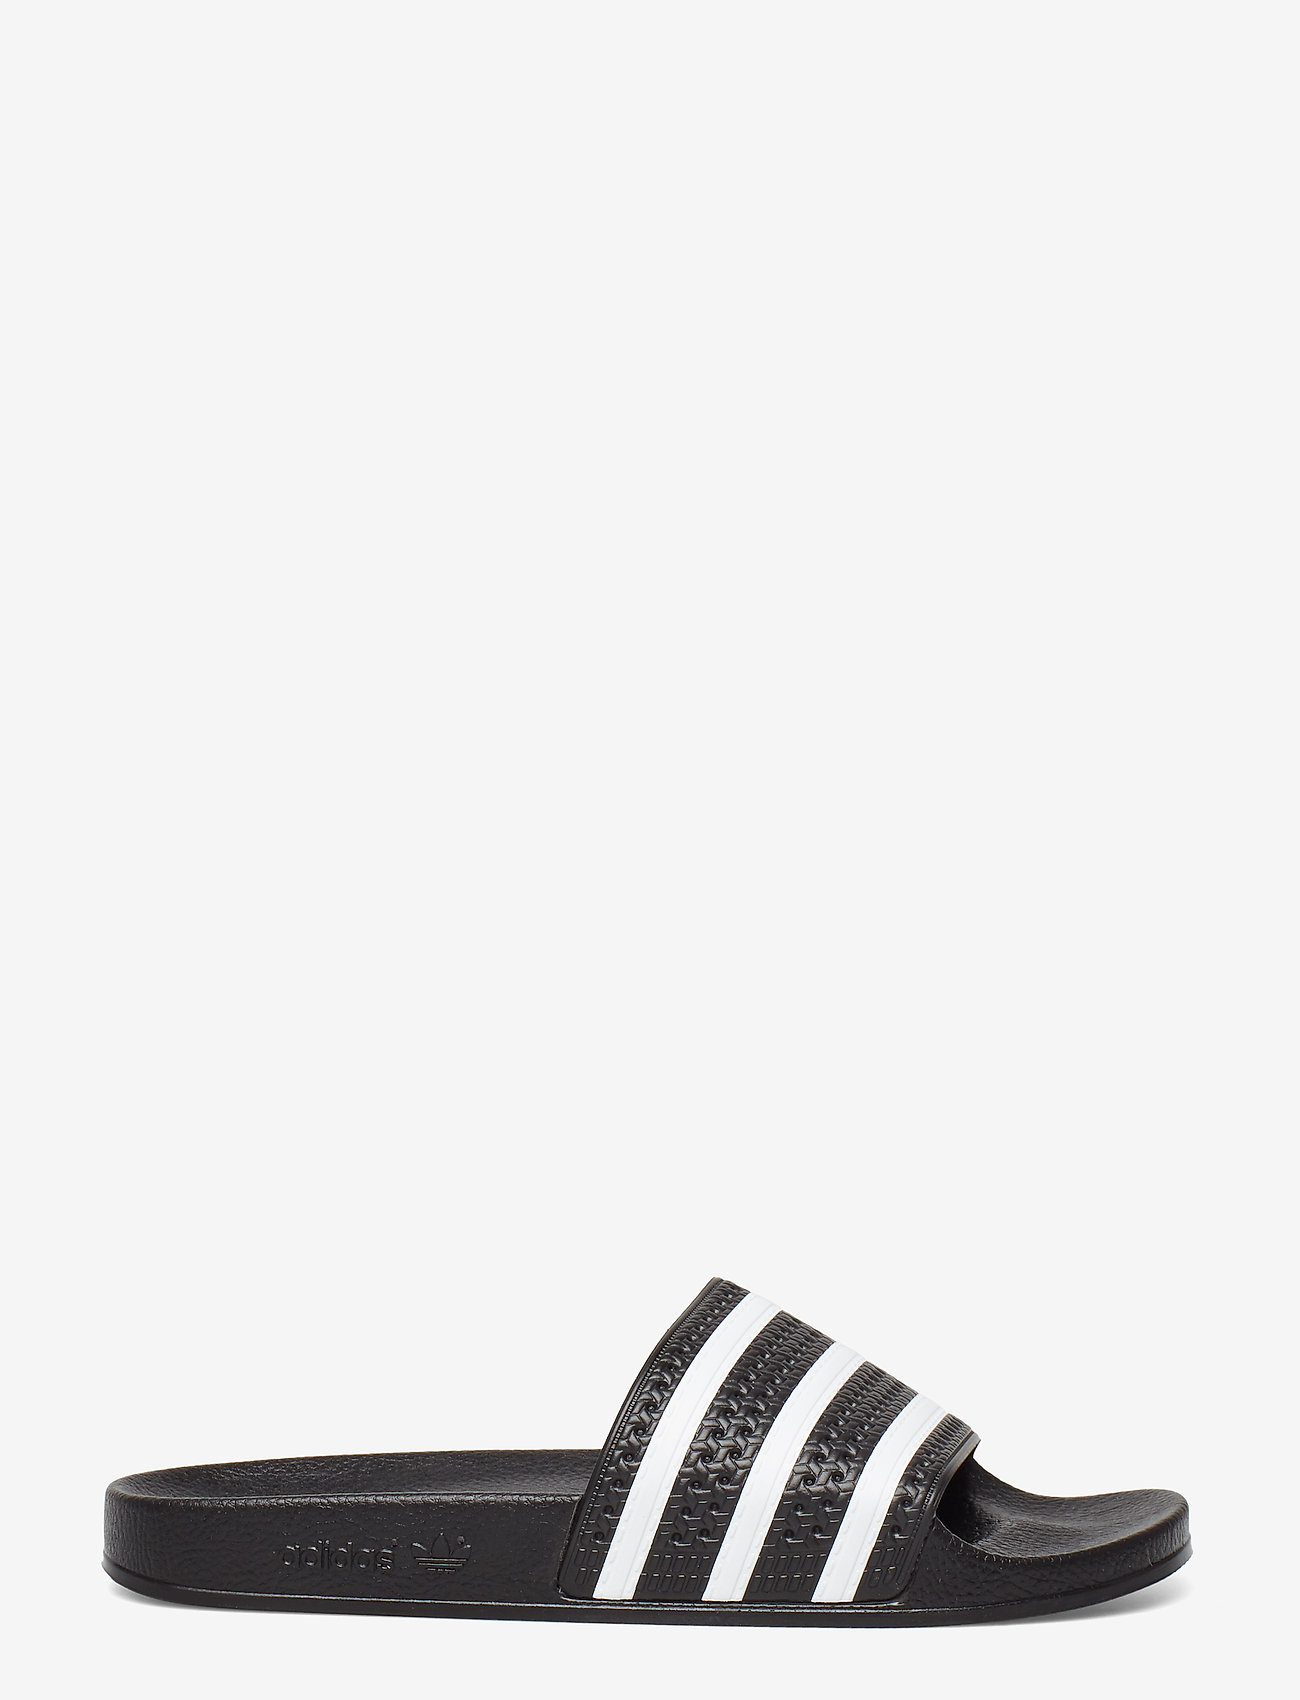 adidas Originals - ADILETTE - pool sliders - cblack/white/cblack - 1